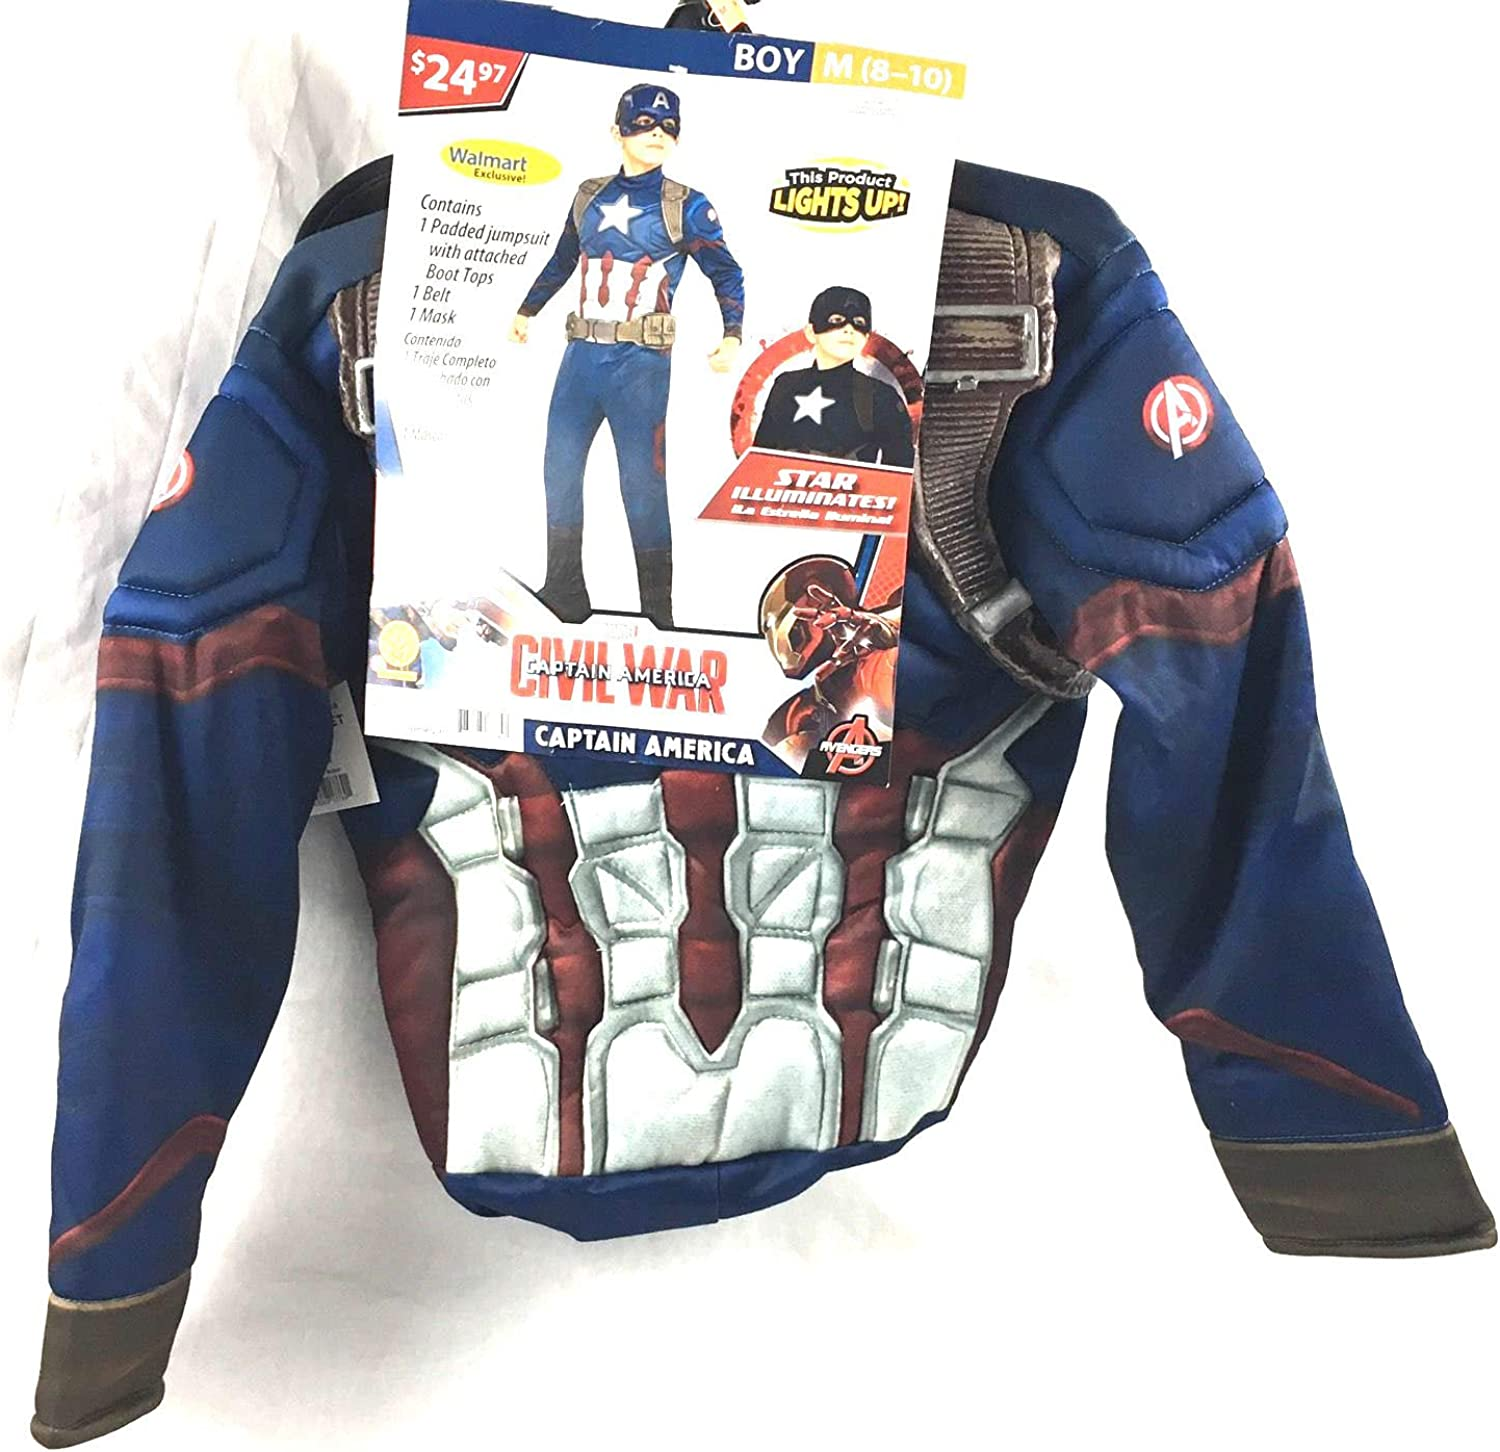 Amazon Com Marvel Civil War Captain America Youth M 8 10 Costume Star Lights Up Clothing Enjoy up to 60% off for cyber week! amazon com